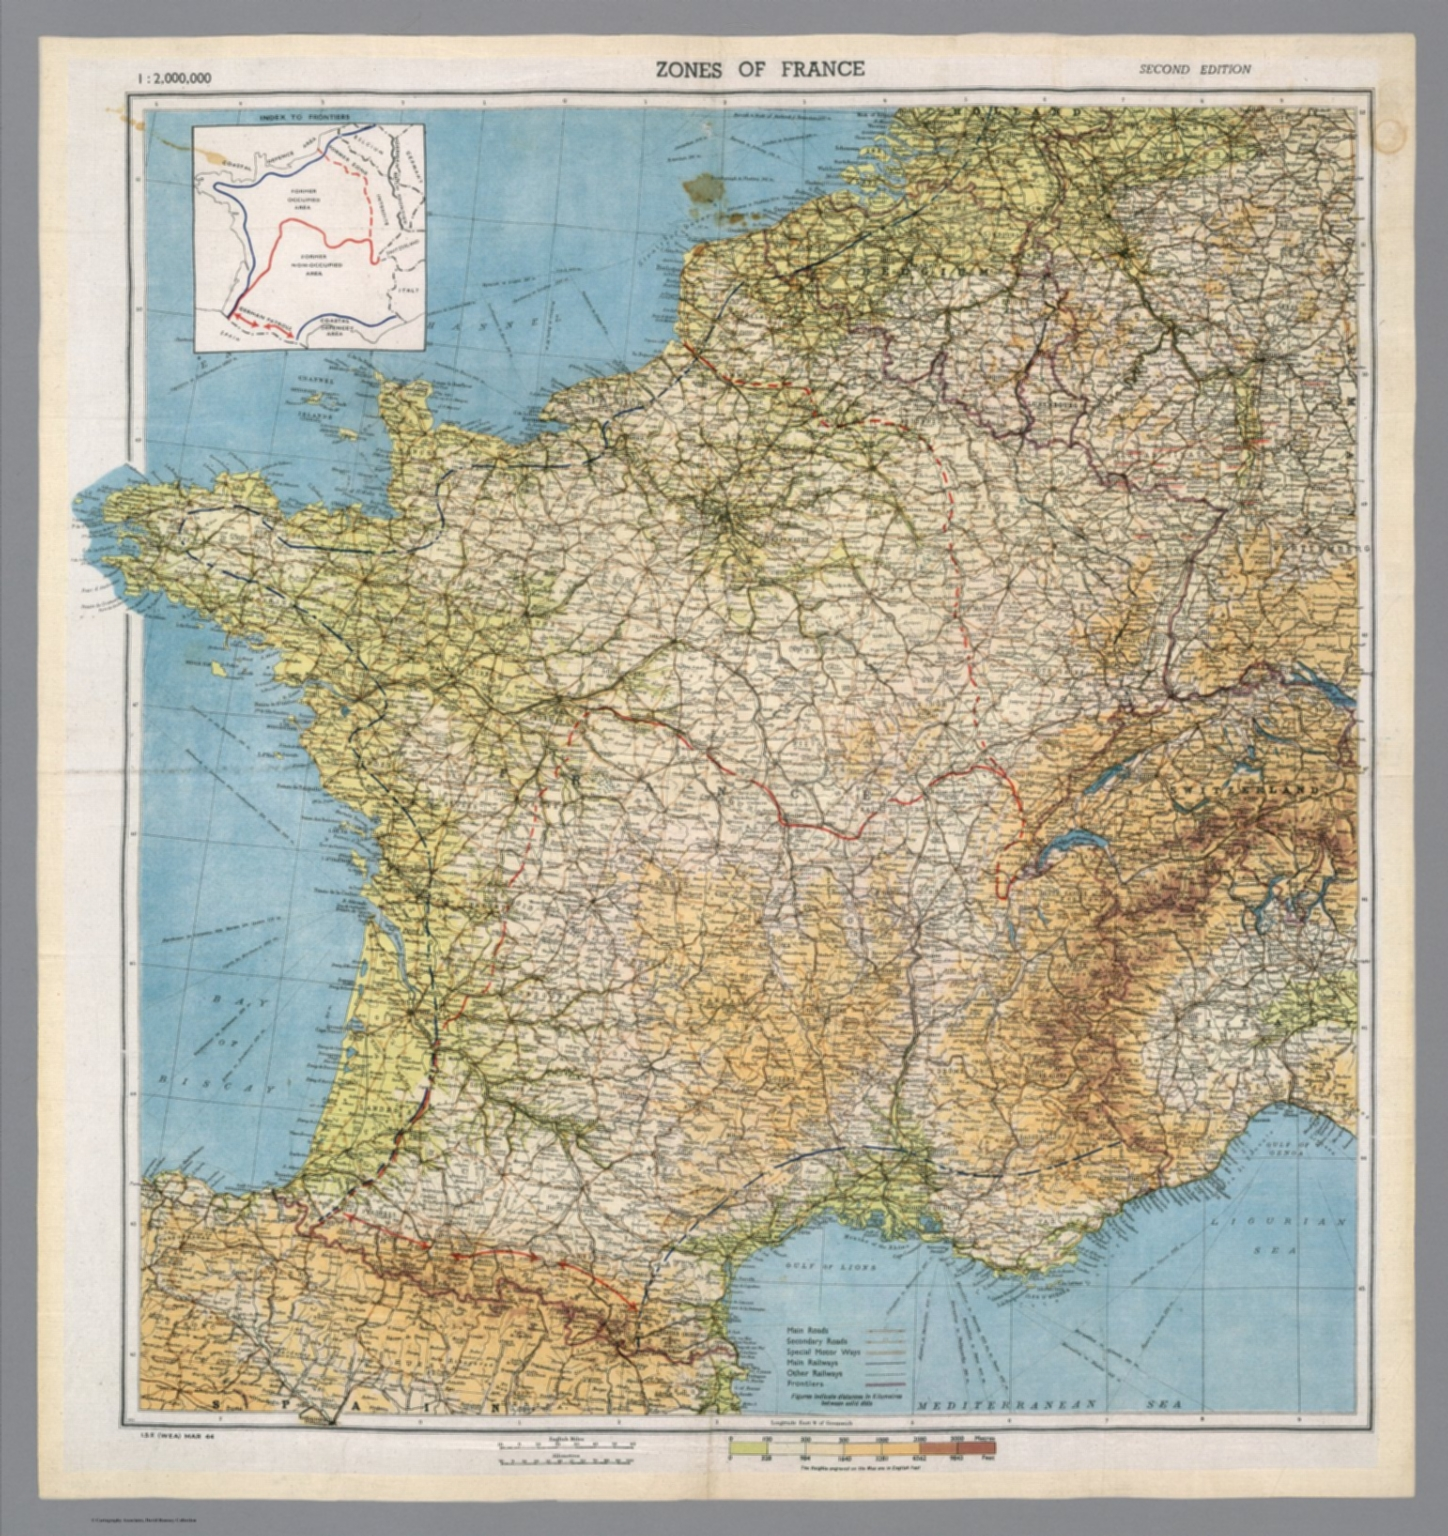 Map Of France Zones.Zones Of France 1 2 000 000 David Rumsey Historical Map Collection